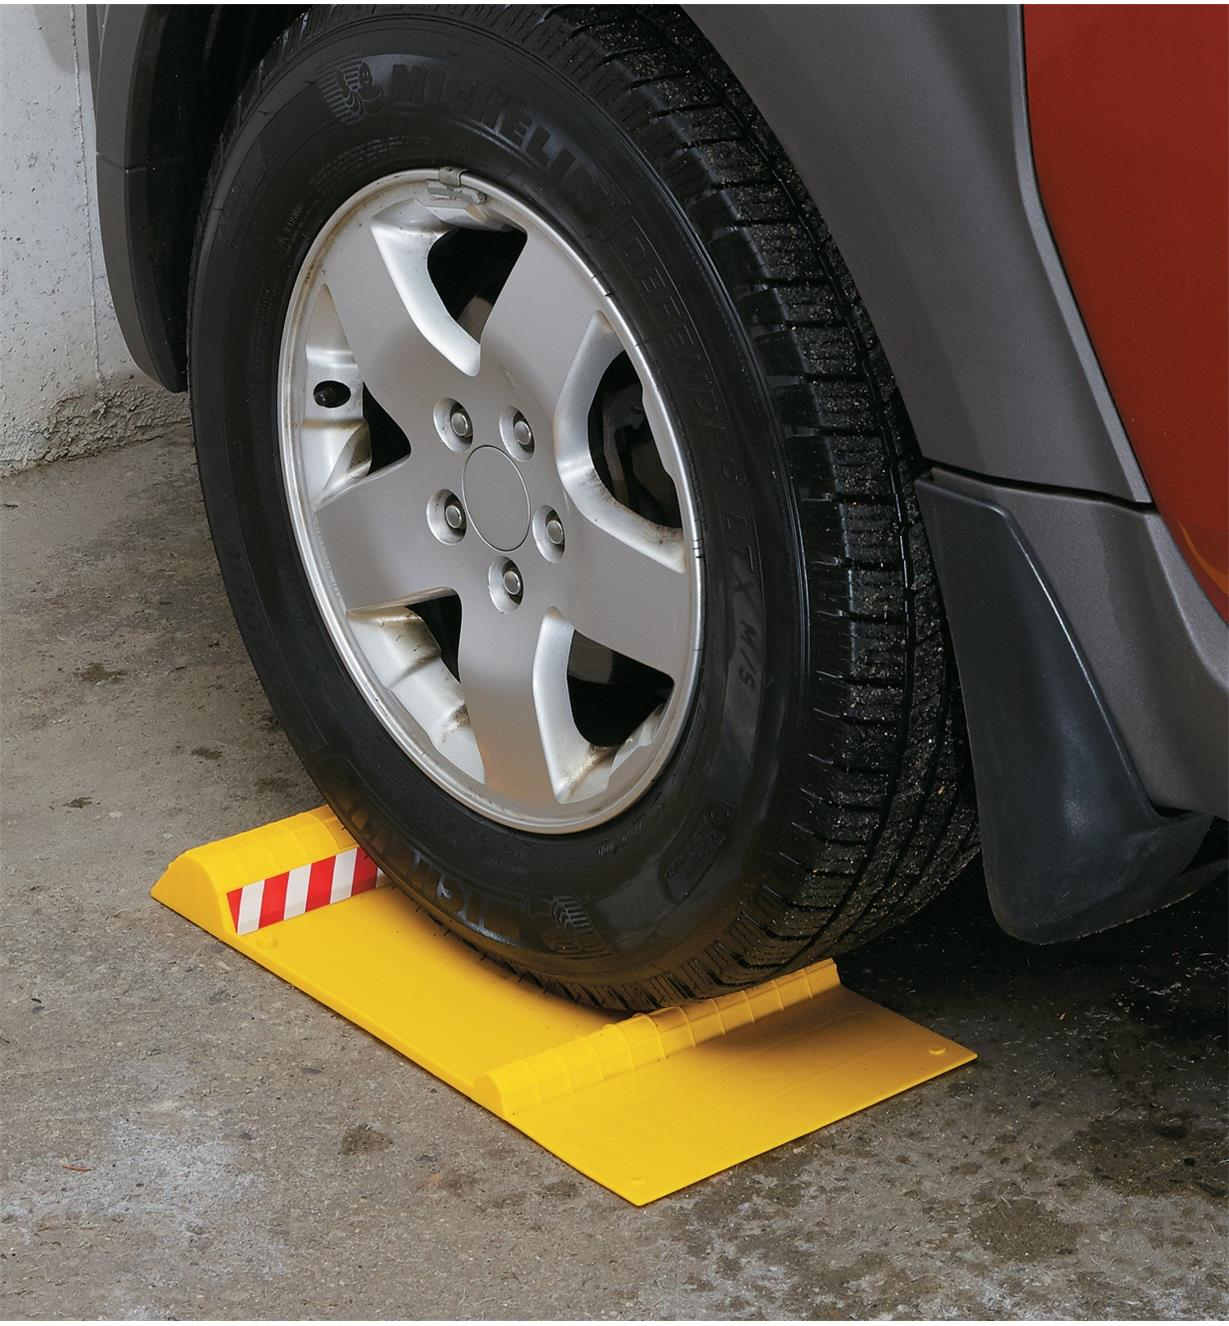 Car wheel positioned on a parking mat